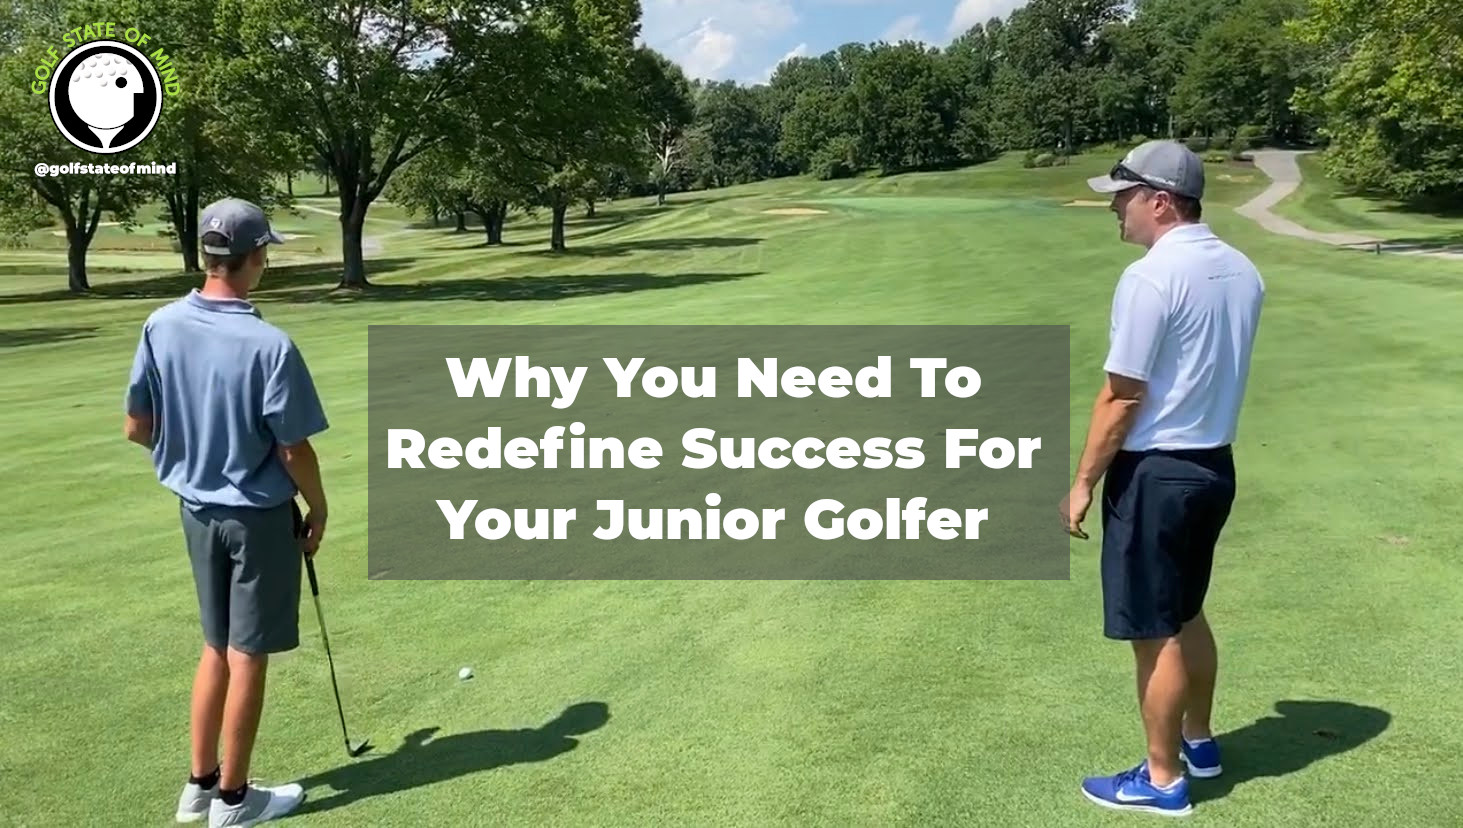 Why You Need To Redefine Success For Your Junior Golfer